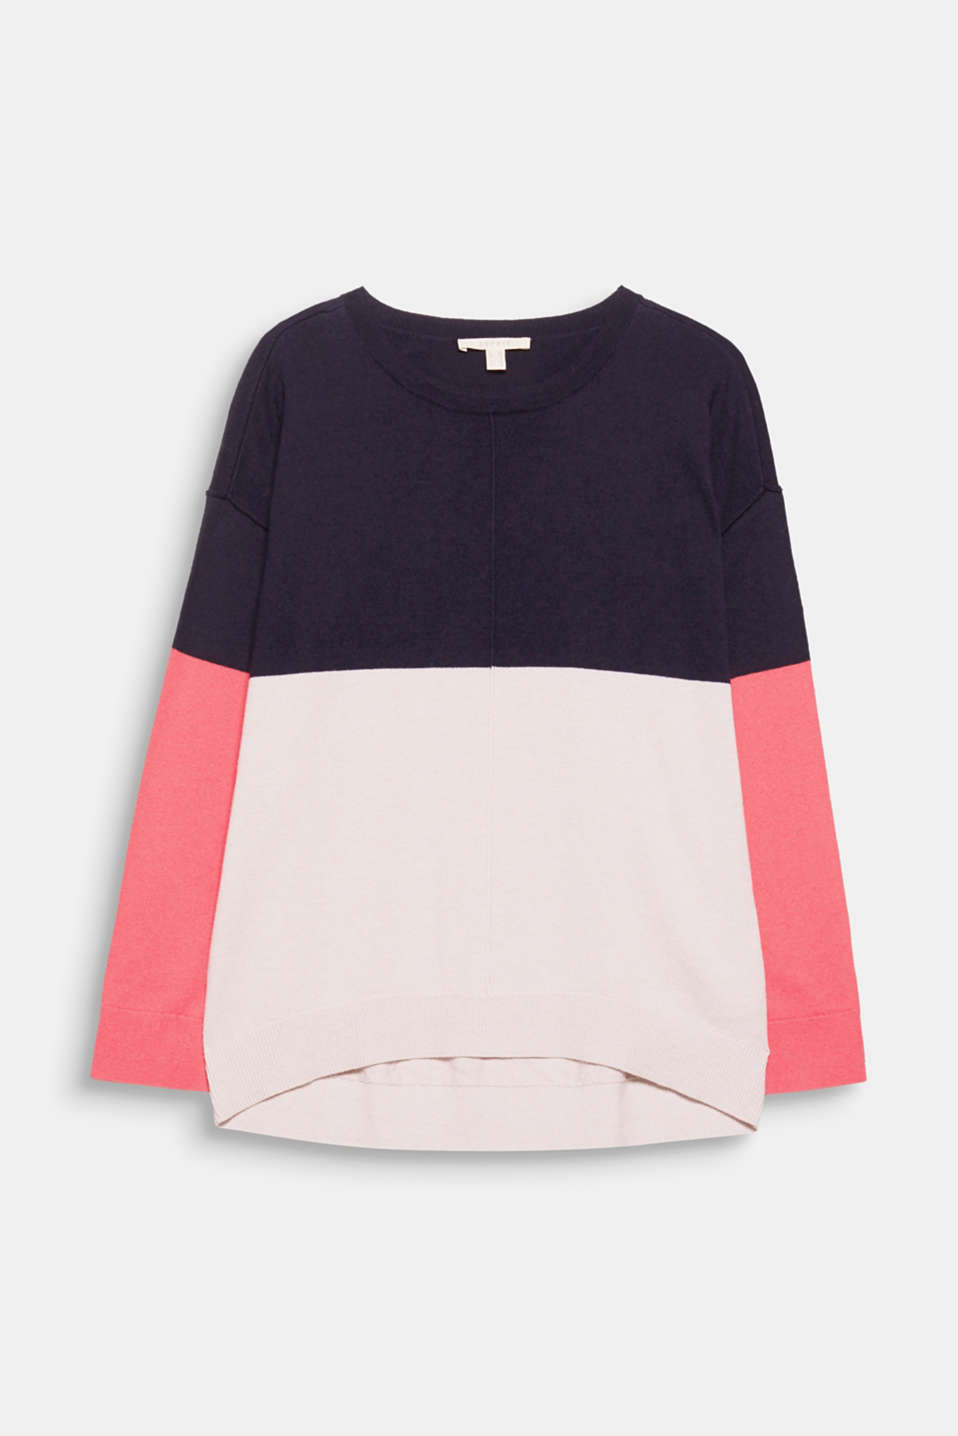 This jumper feels luxurious to wear thanks to the touch of cashmere and features a trendy colour blocking design!